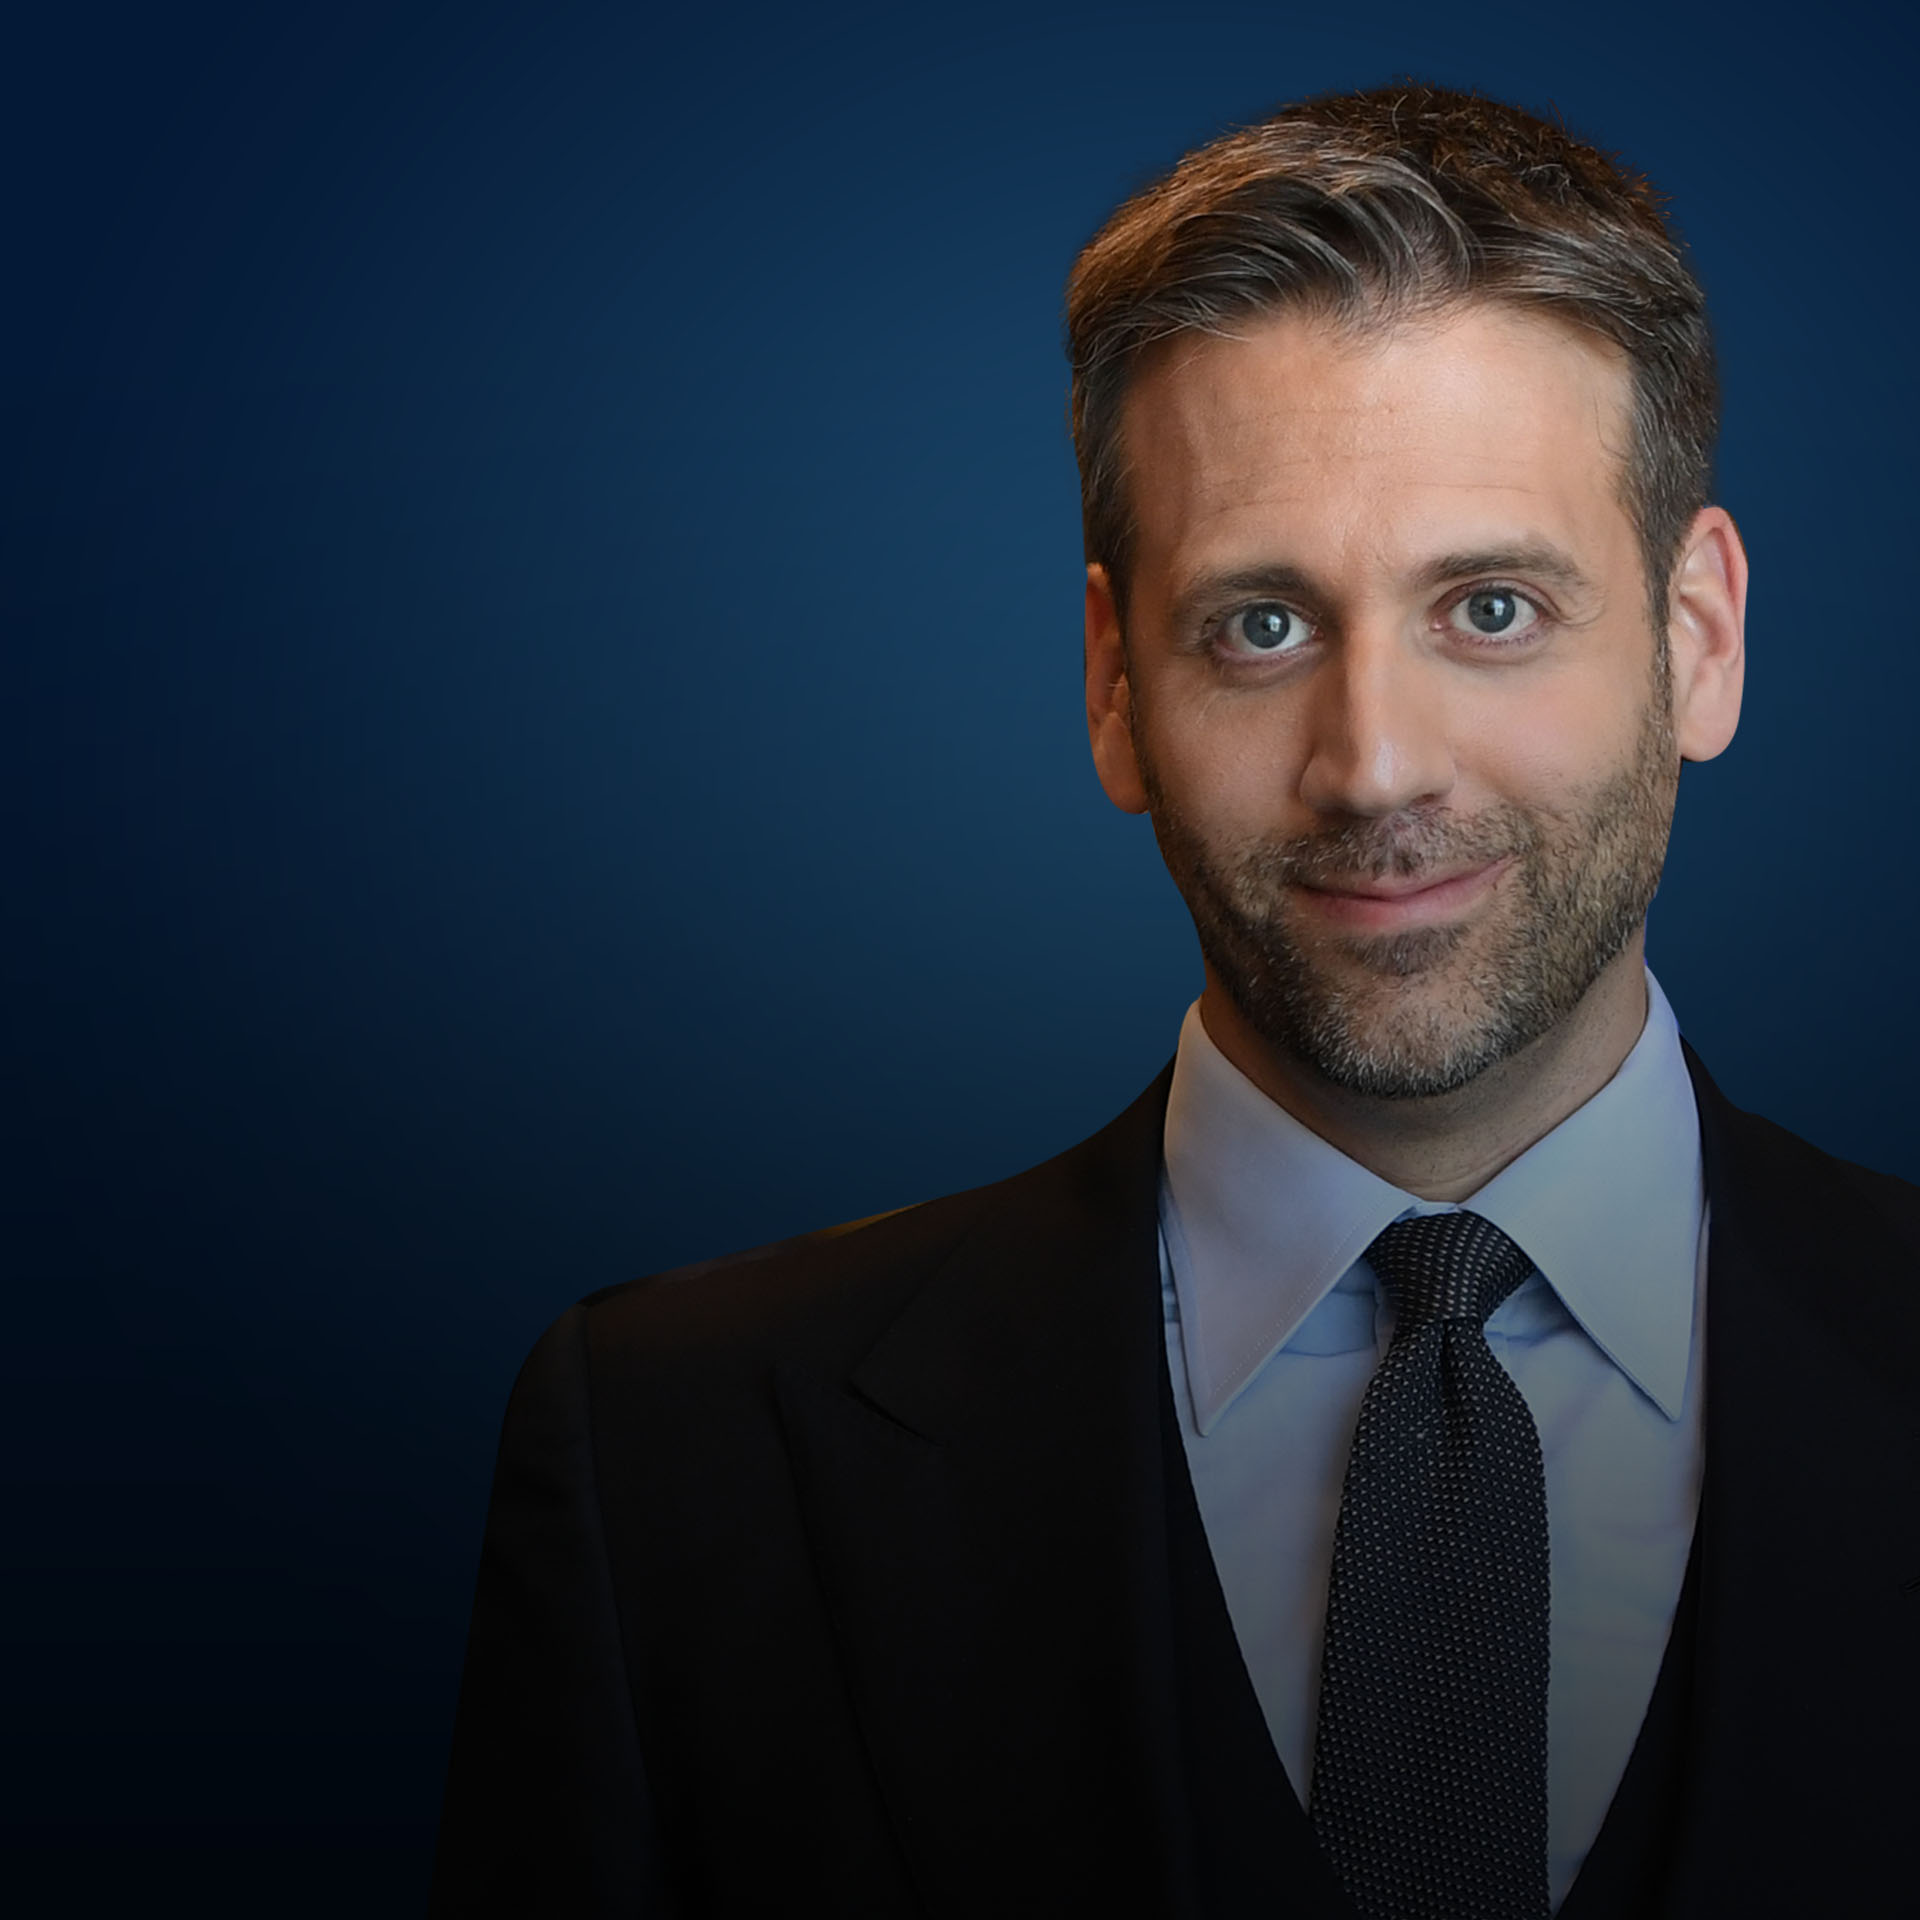 The Max Kellerman Show